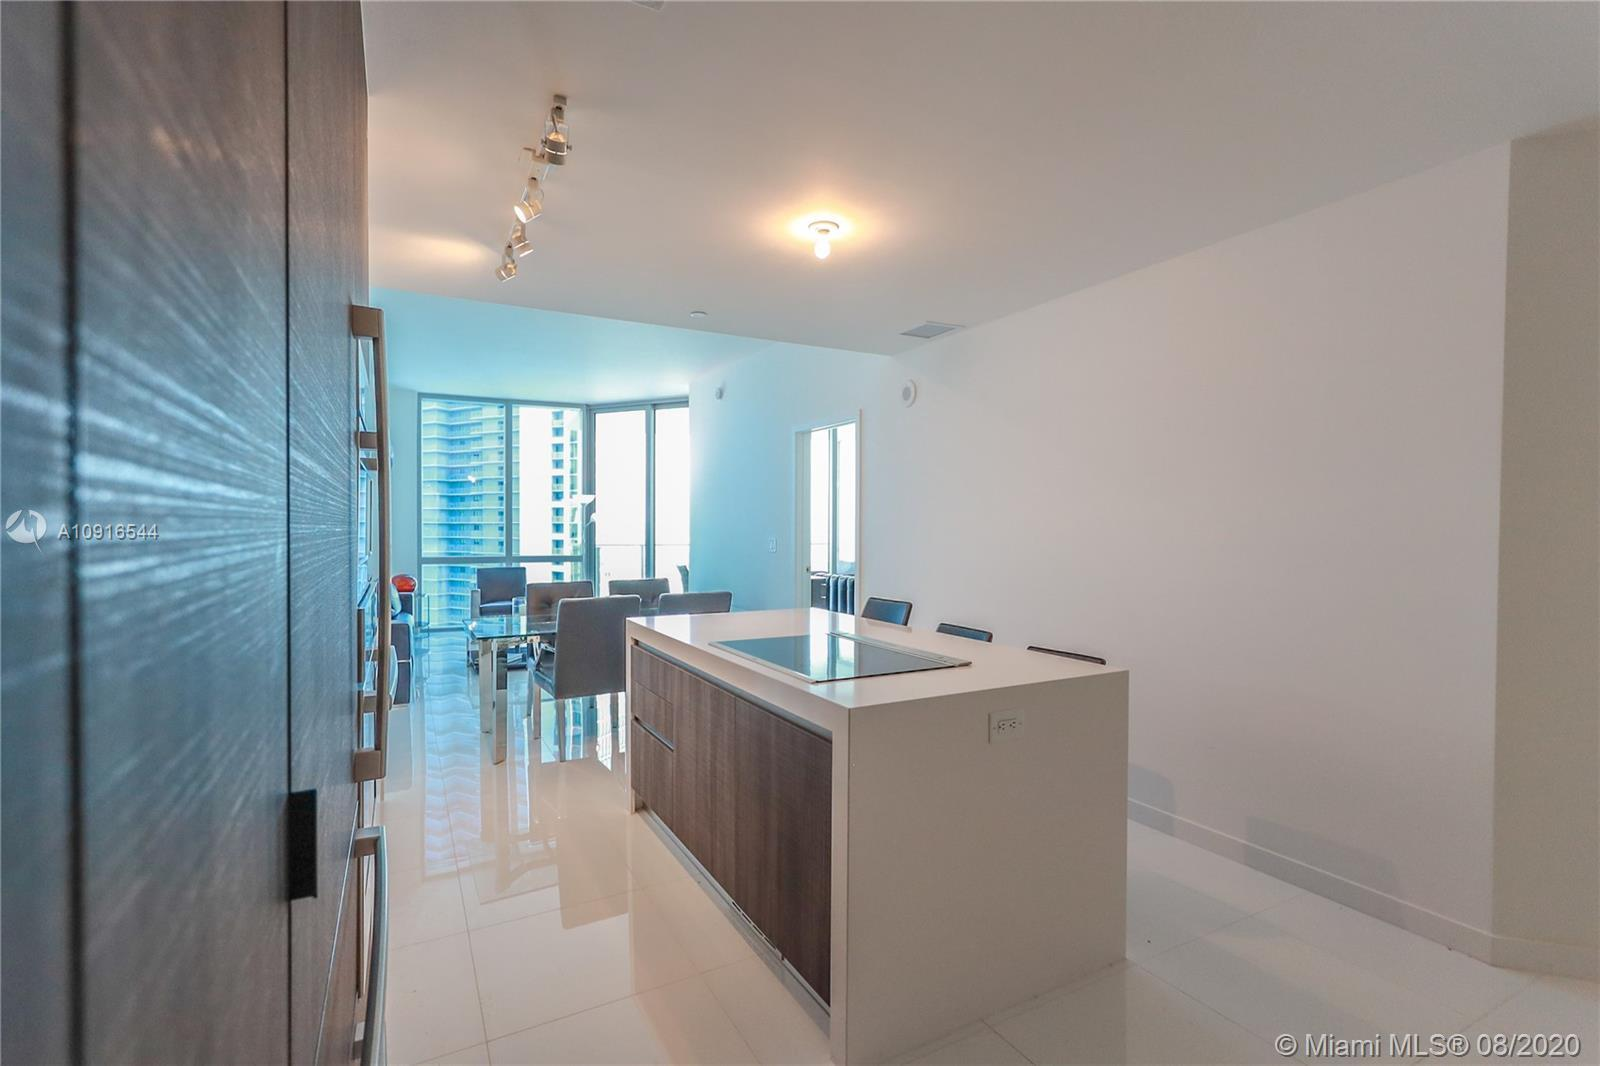 The best 3-4 bedrooms line at Paramount Miami World Center building with water and city views. Live,